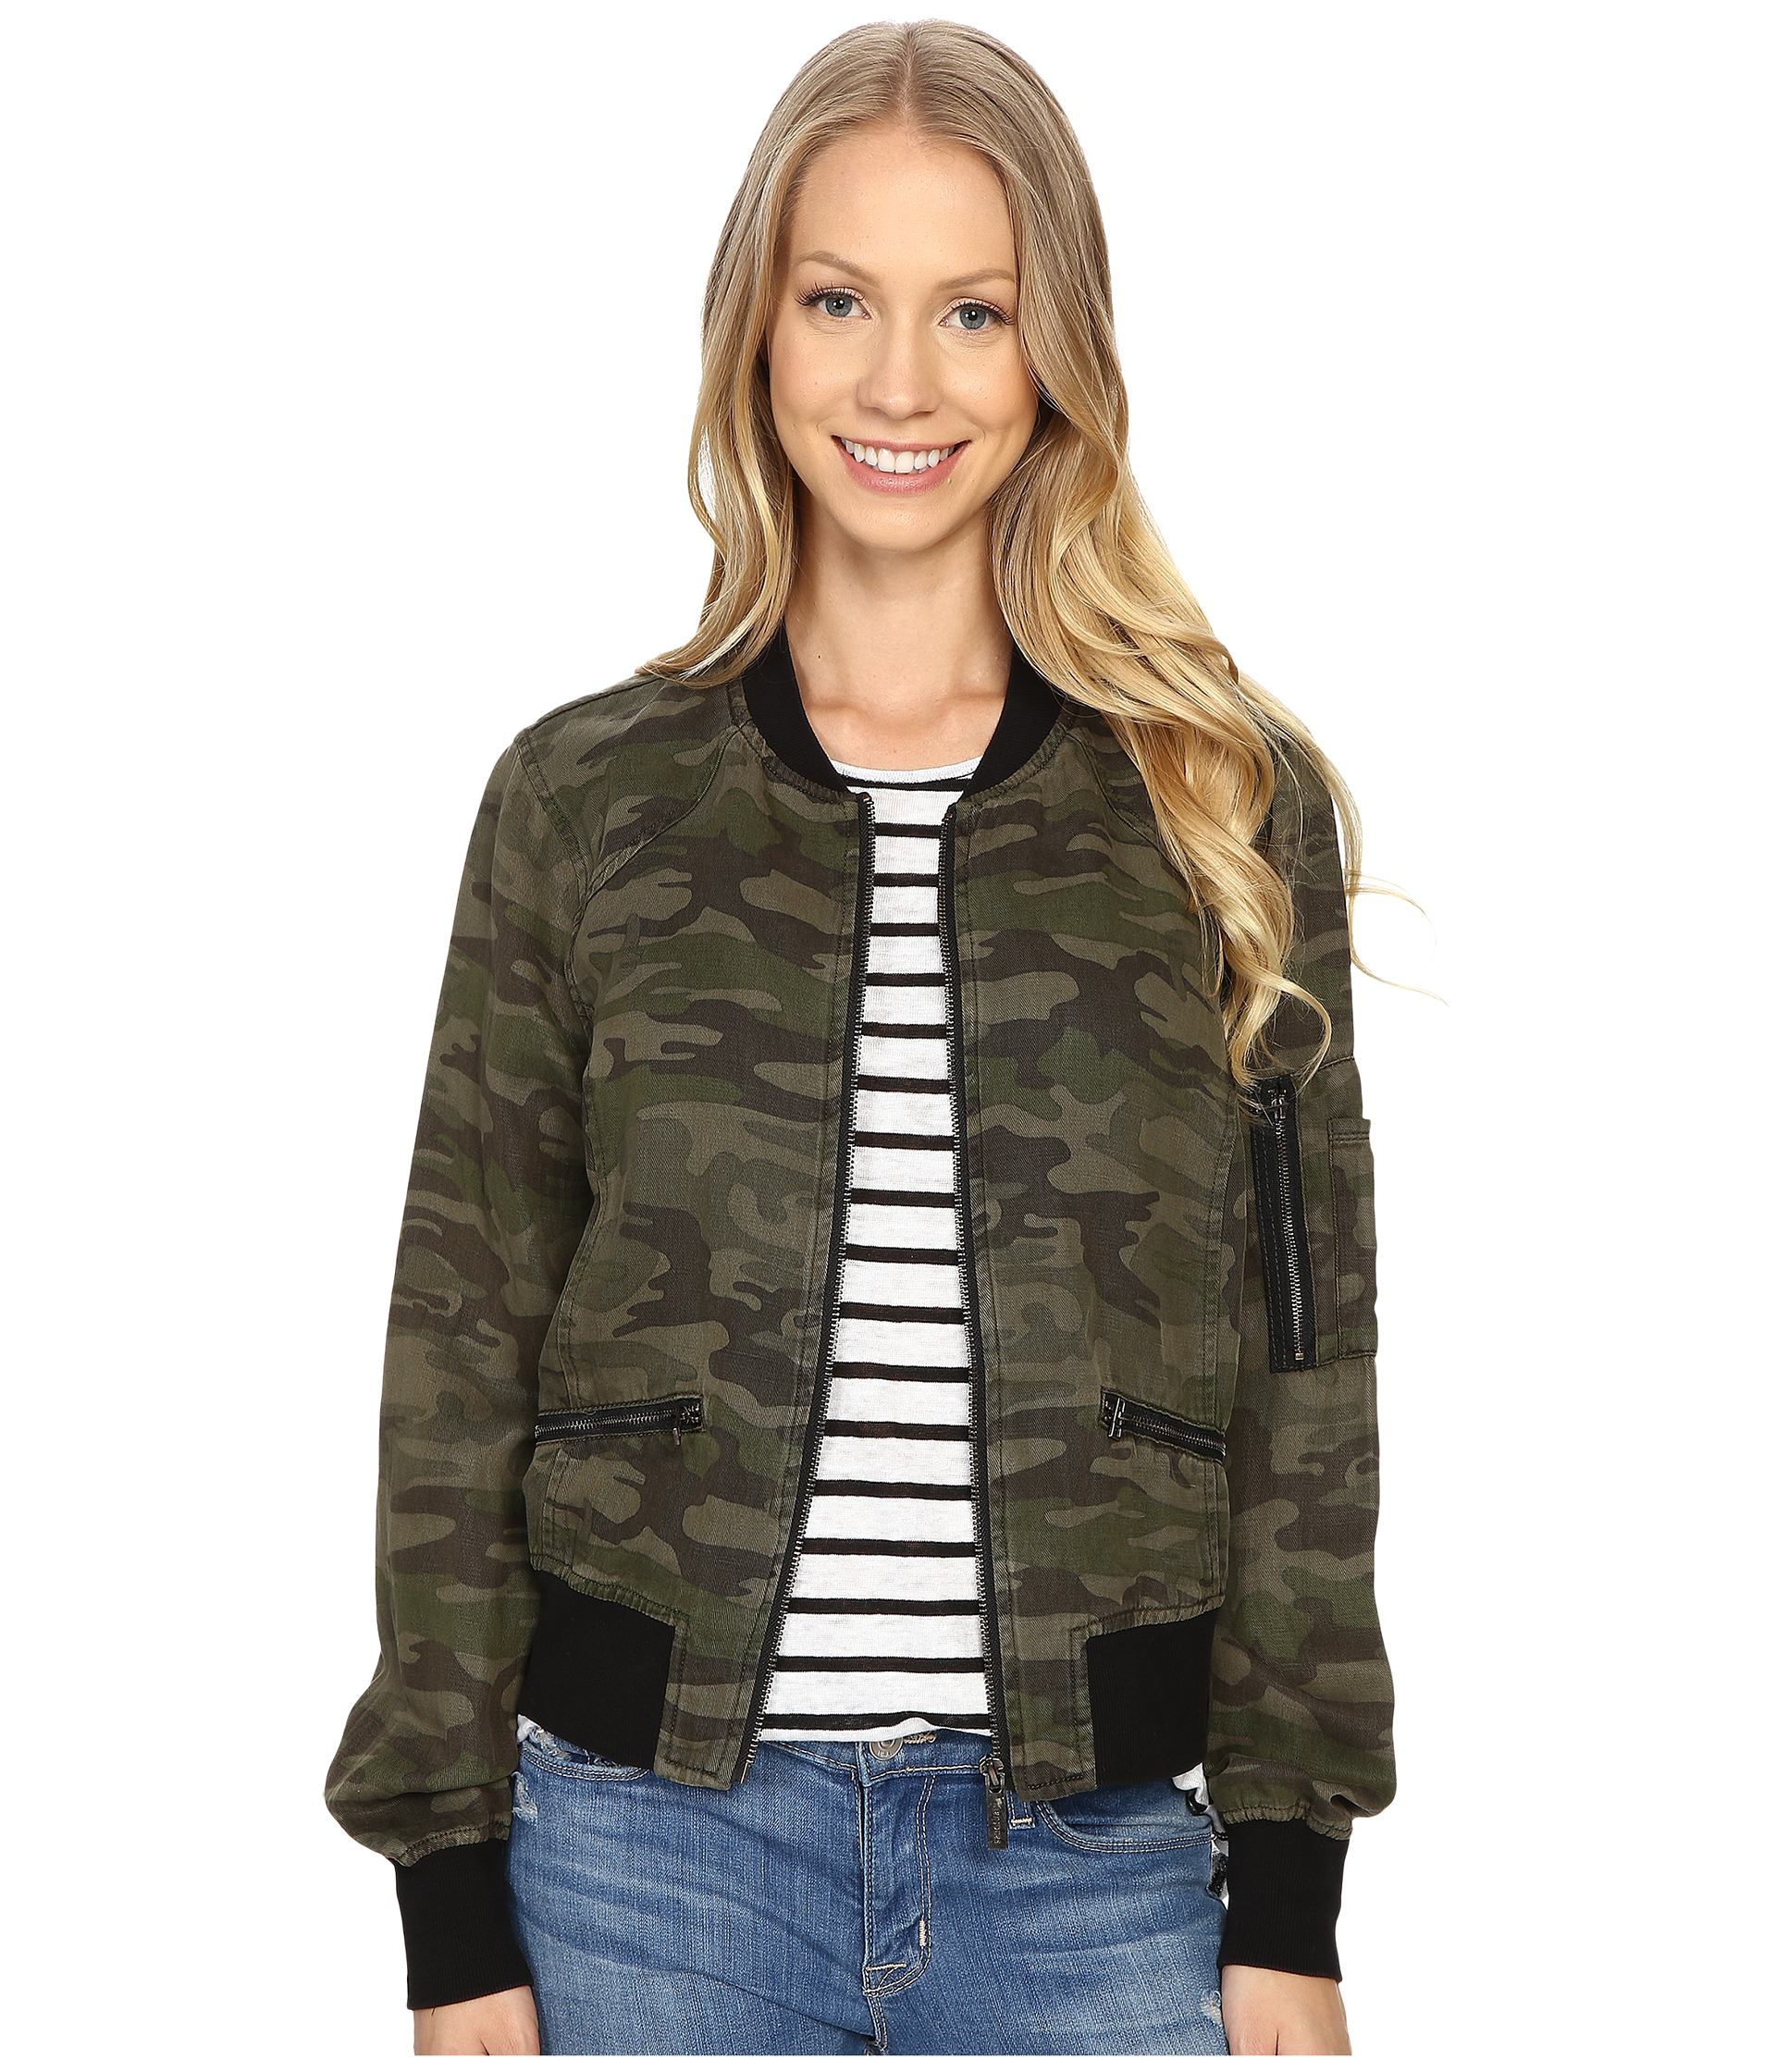 Sanctuary New Shrunken Bomber Jacket at Zappos.com